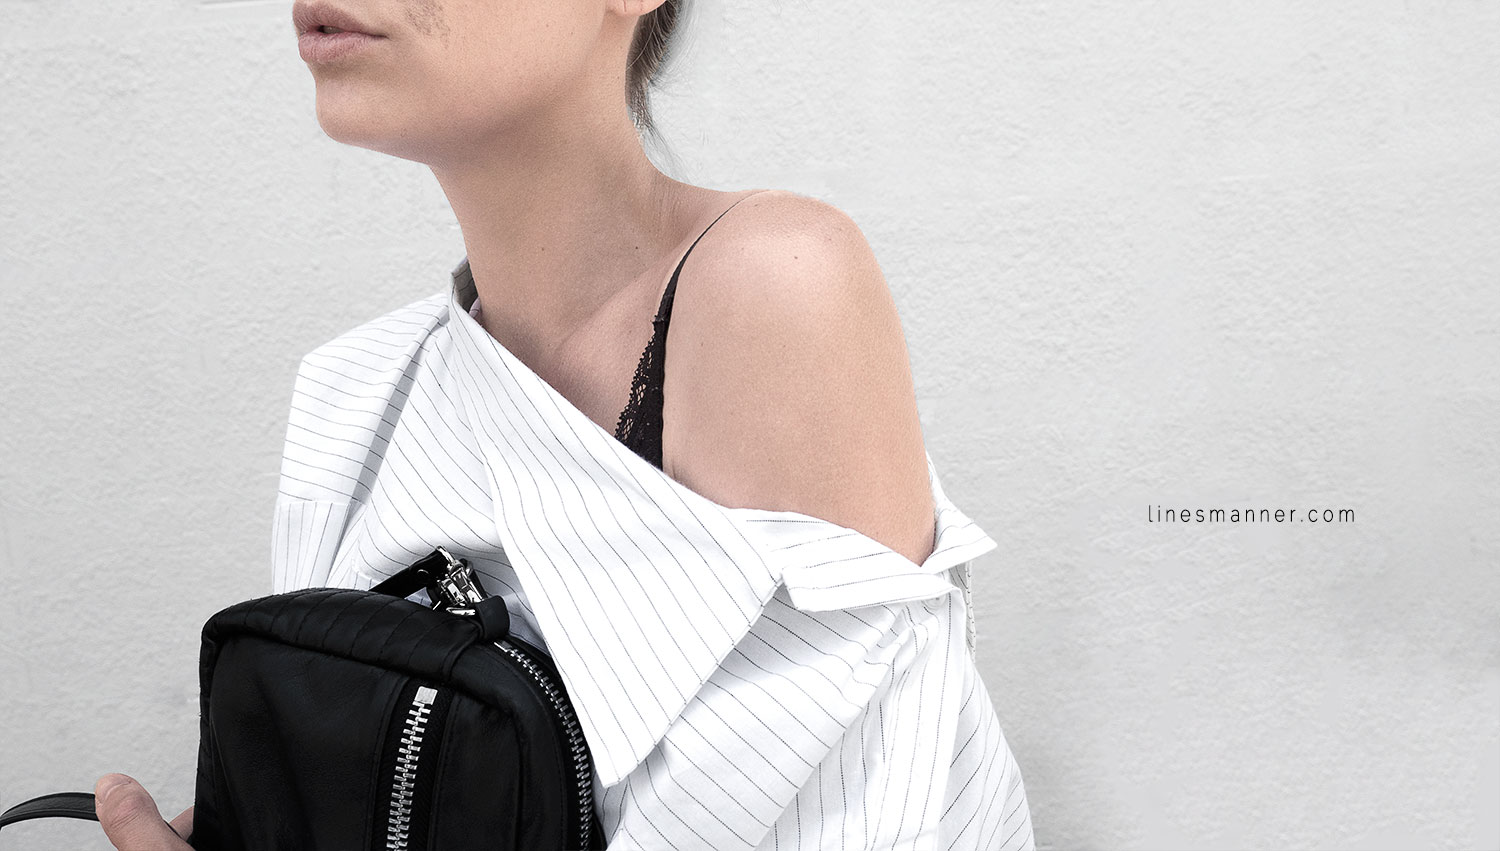 Lines-Manner-Simplicity-Off_shoulder-Monochrome-Noway_Monday-Details-Edgy6Backward-Sleek Statement_piece-Pinstripe-Business-Shirt-Minimal-Essentials-Outfit-Fashion-Minimal_fashion-Slides-Everlane-3